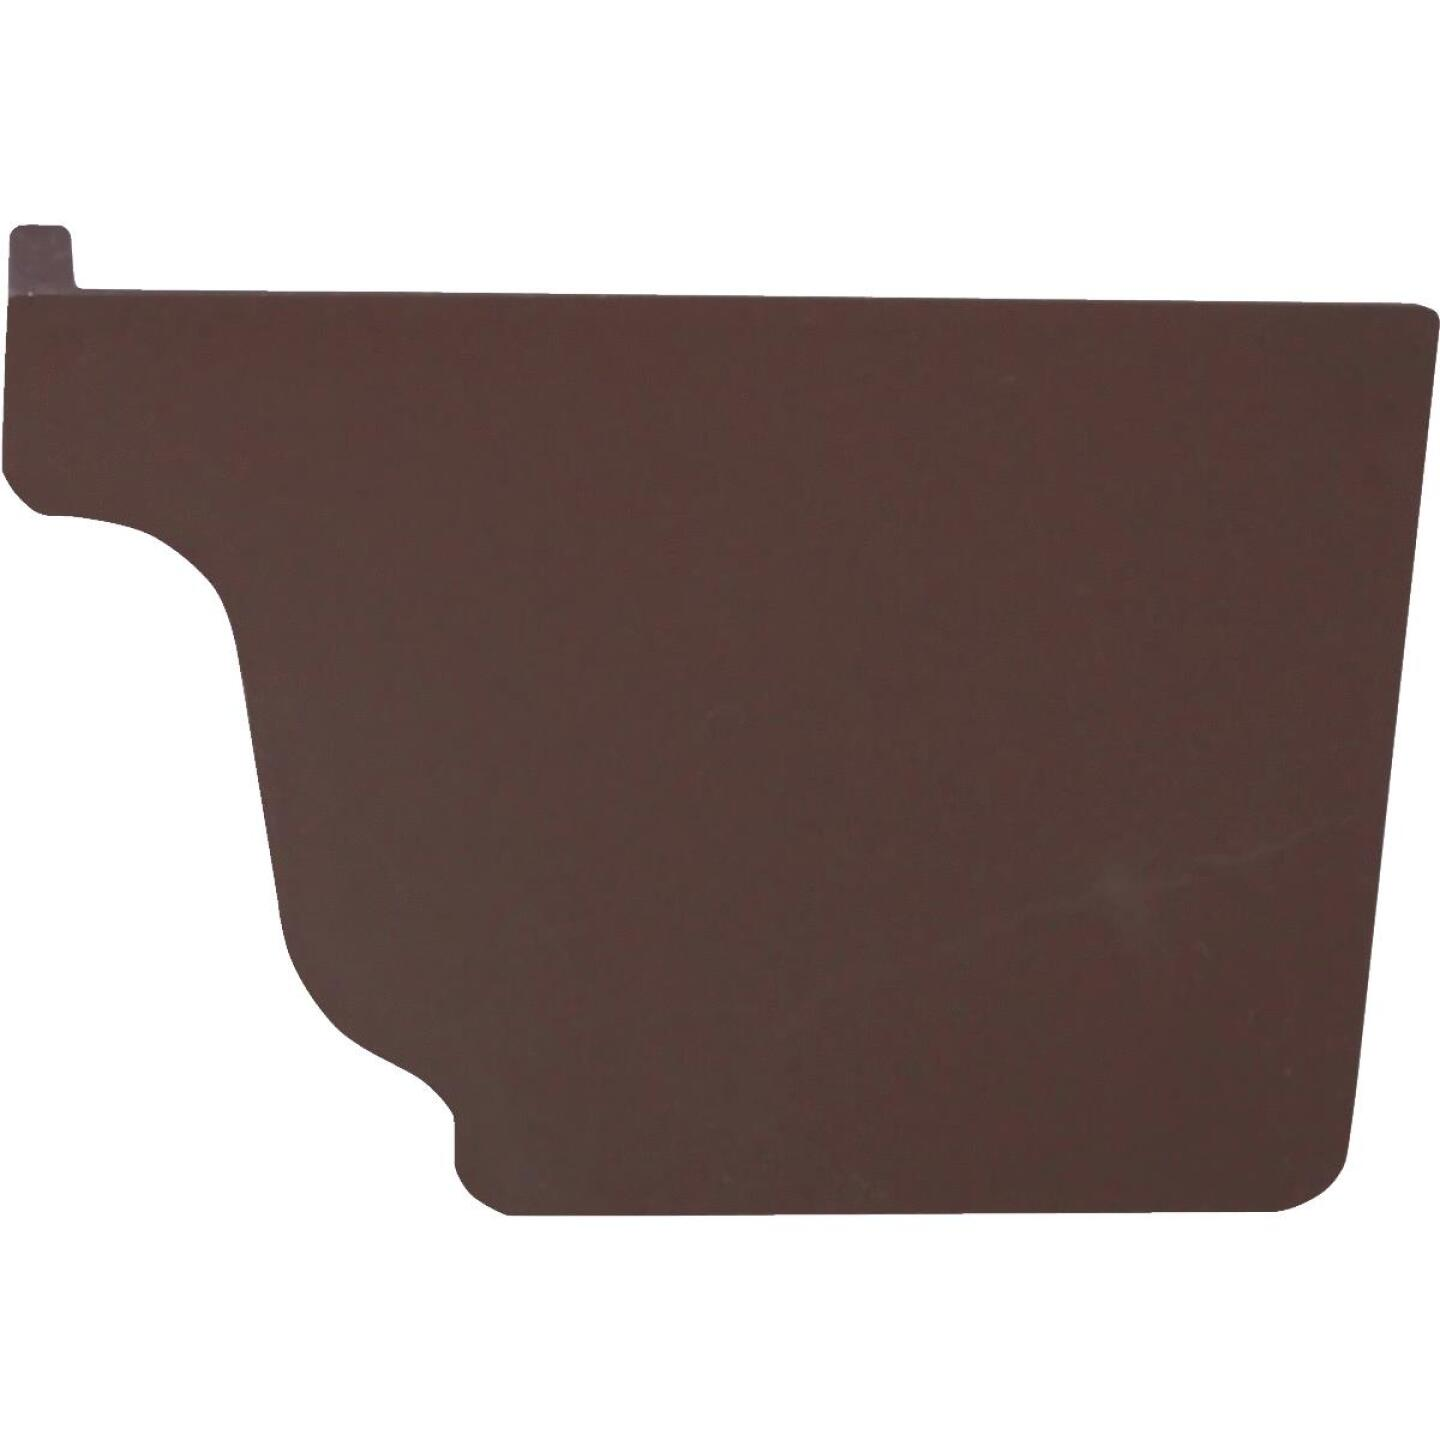 Repla K 5 In. Vinyl Brown Right Gutter End Cap Image 1